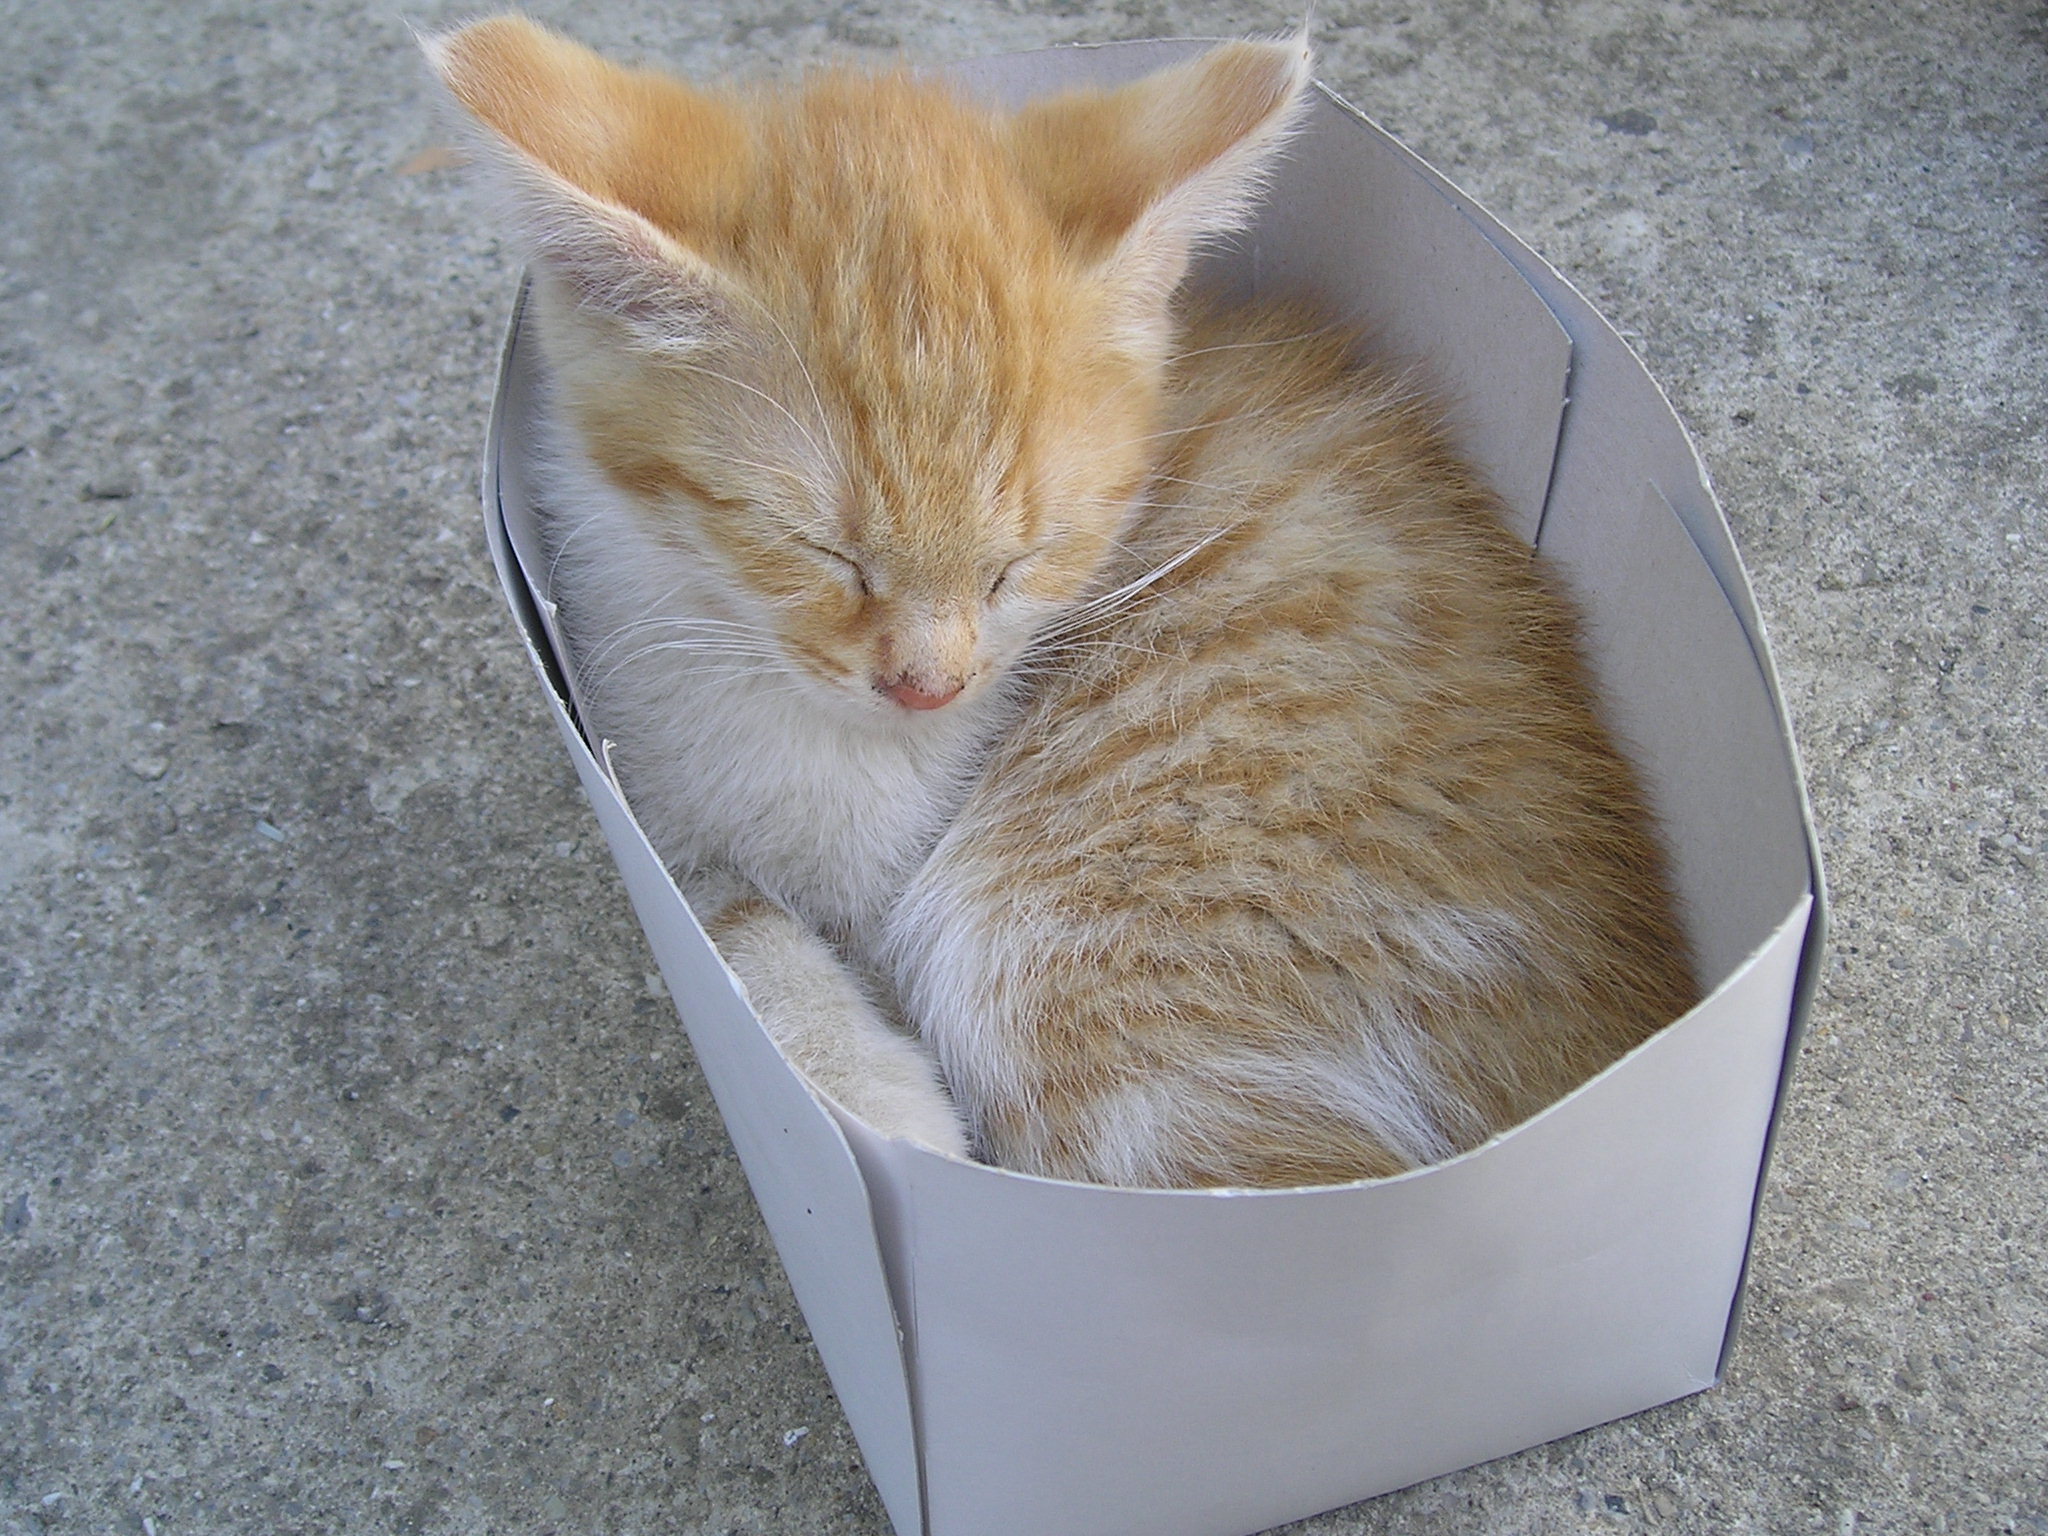 cats don t just love boxes cats may need boxes cats and squirrels and other important things. Black Bedroom Furniture Sets. Home Design Ideas